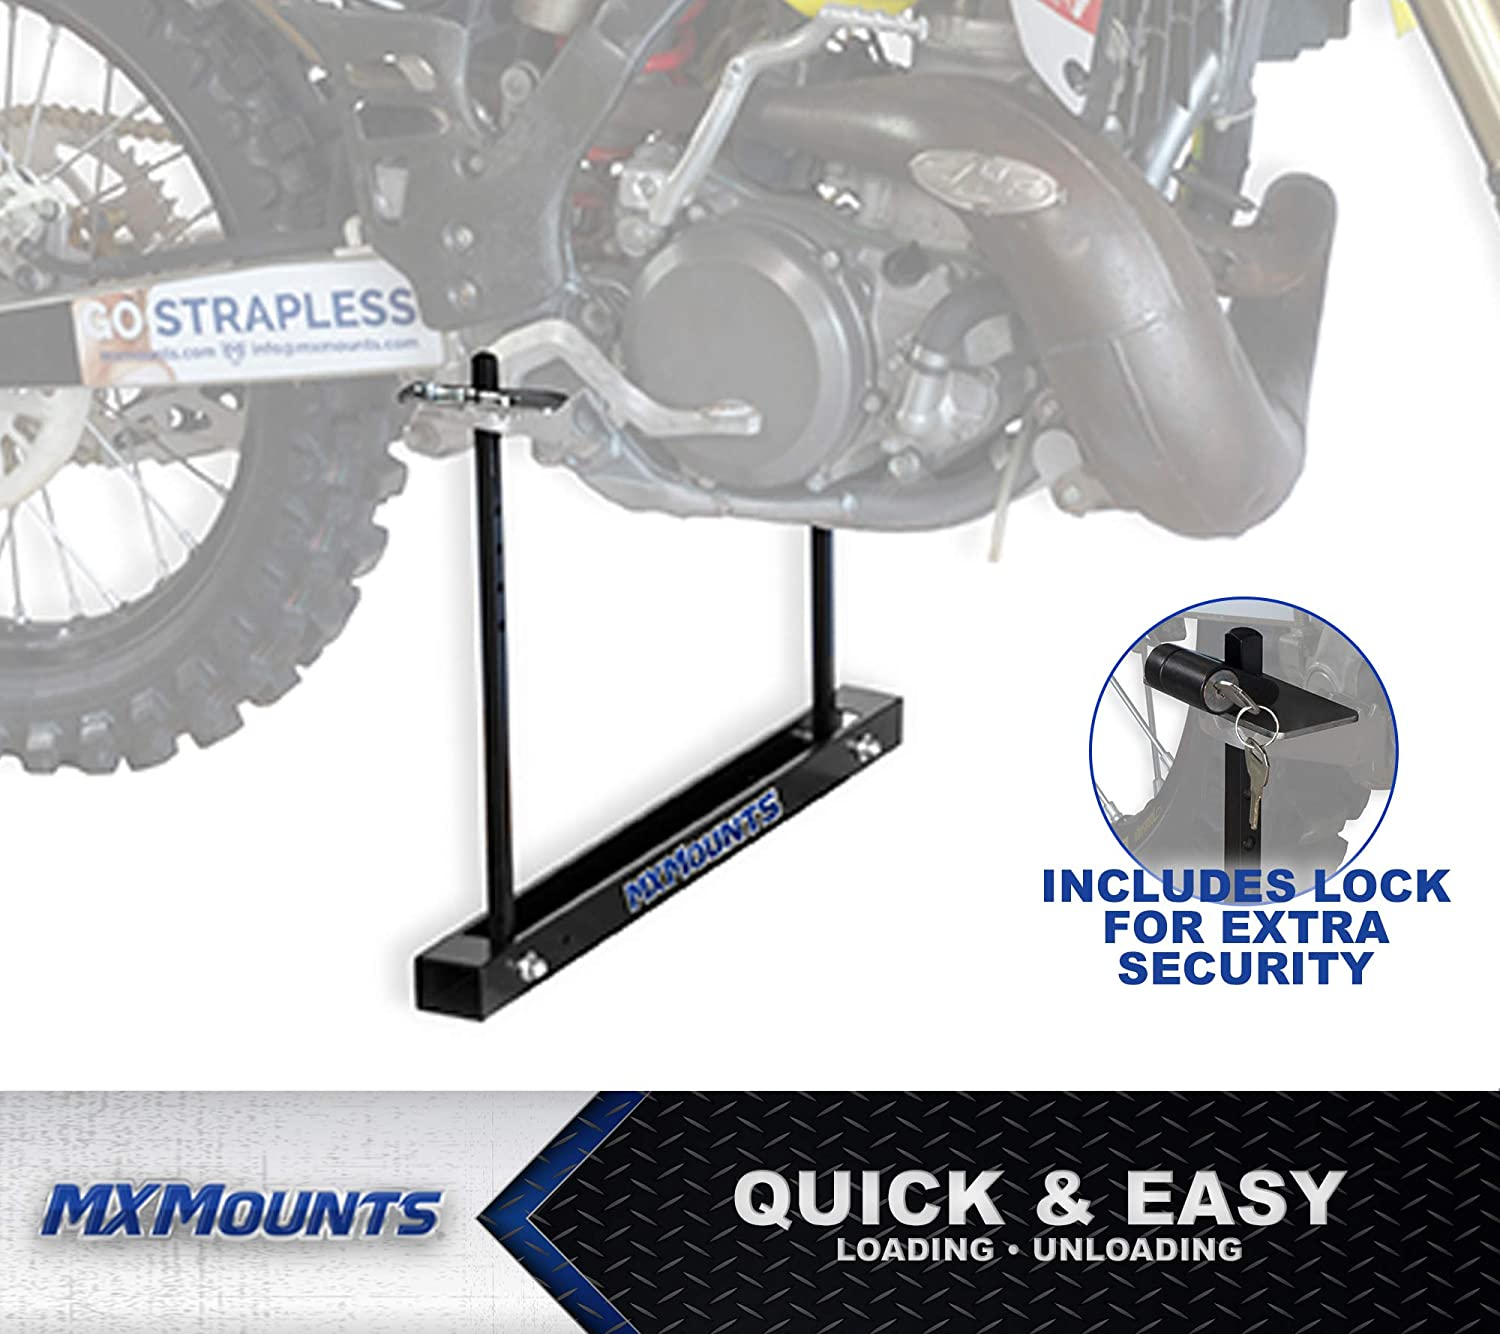 Fold Flat Design Lockable Truck Bed and Trailer Mount All Metal MX Mounts Strapless Easy Installation MXI - Single Mount Motocross Carrier Ultimate Bike Trailer Accessory